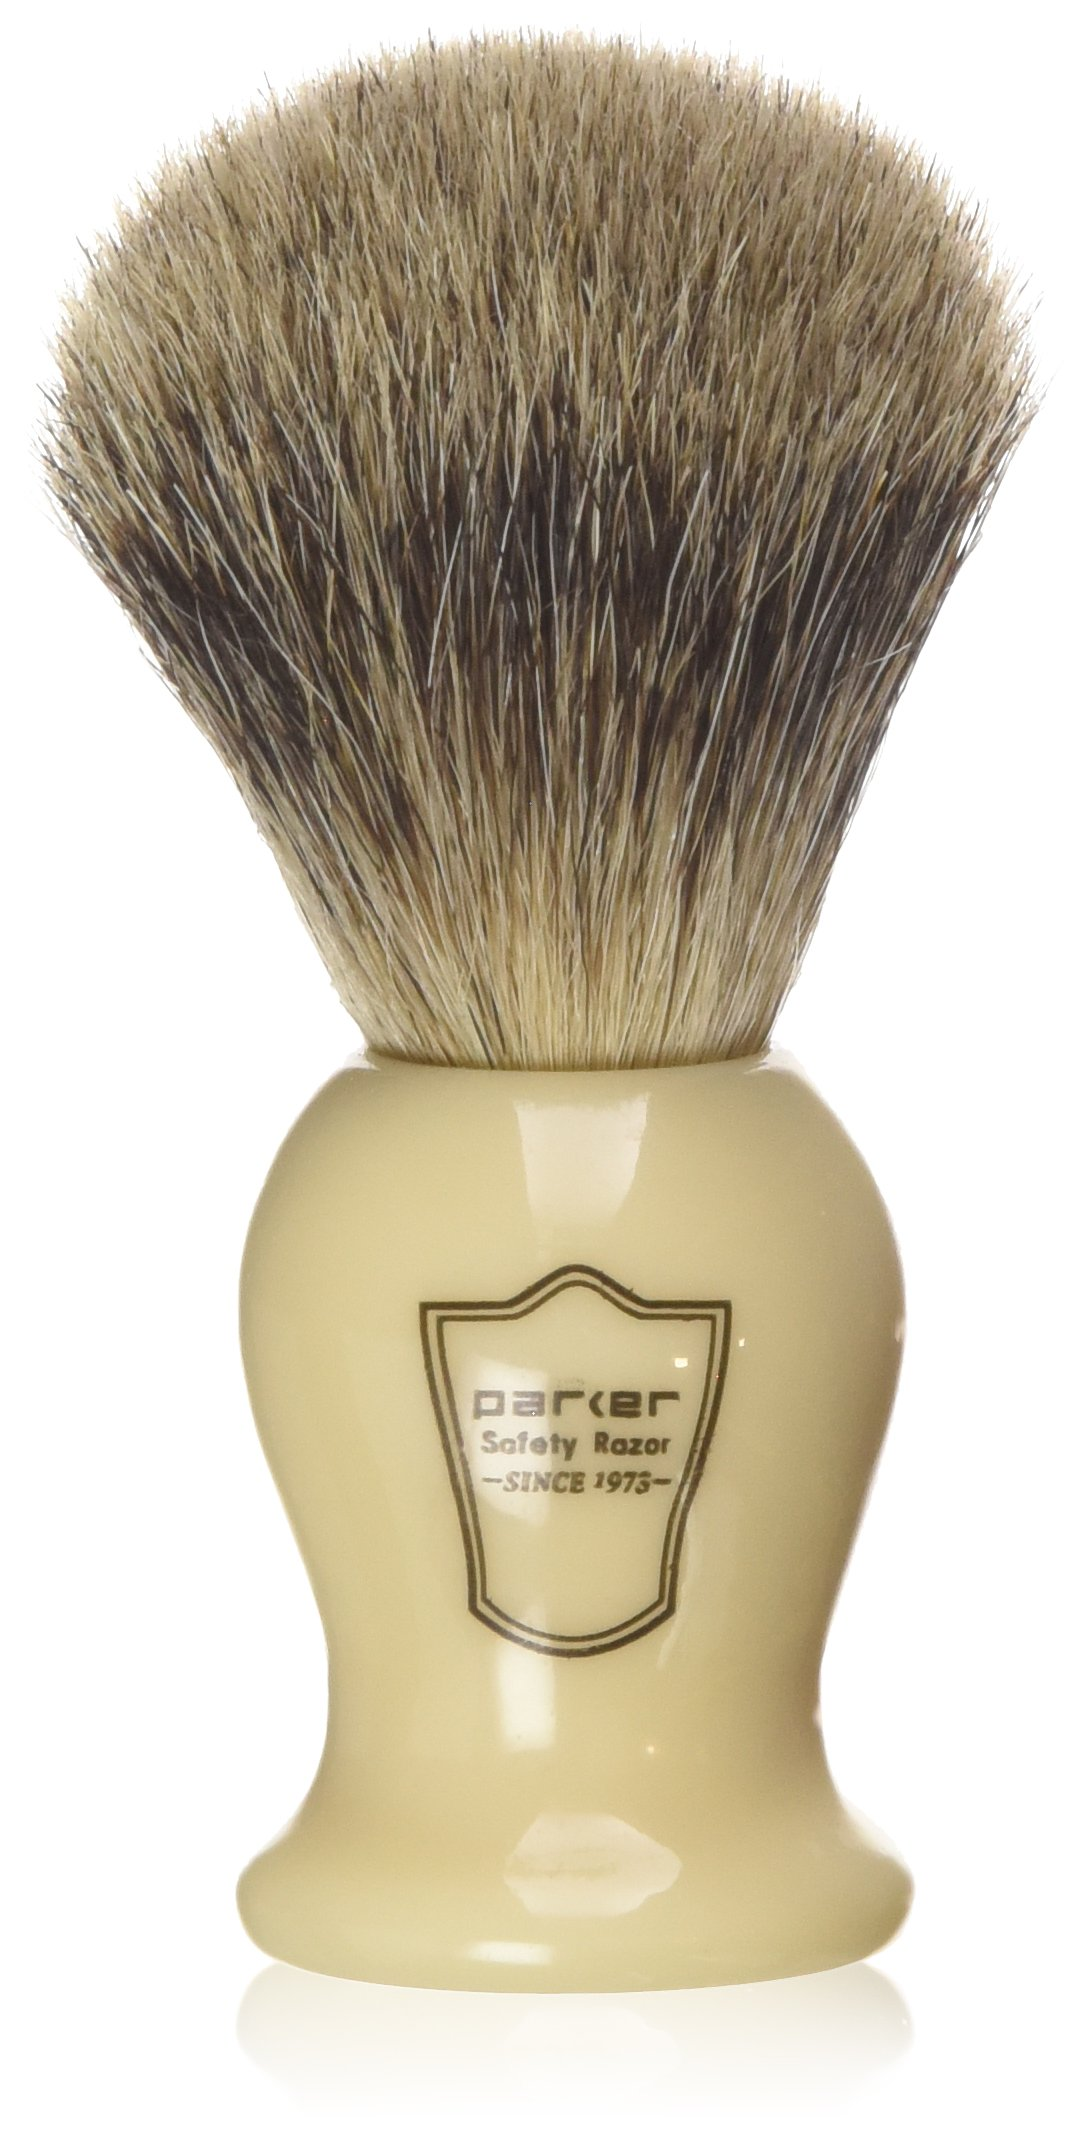 Parker Safety Razor 100% Pure Badger Bristle ''Classic'' Ivory Handle Shaving Brush -- Brush Stand Included